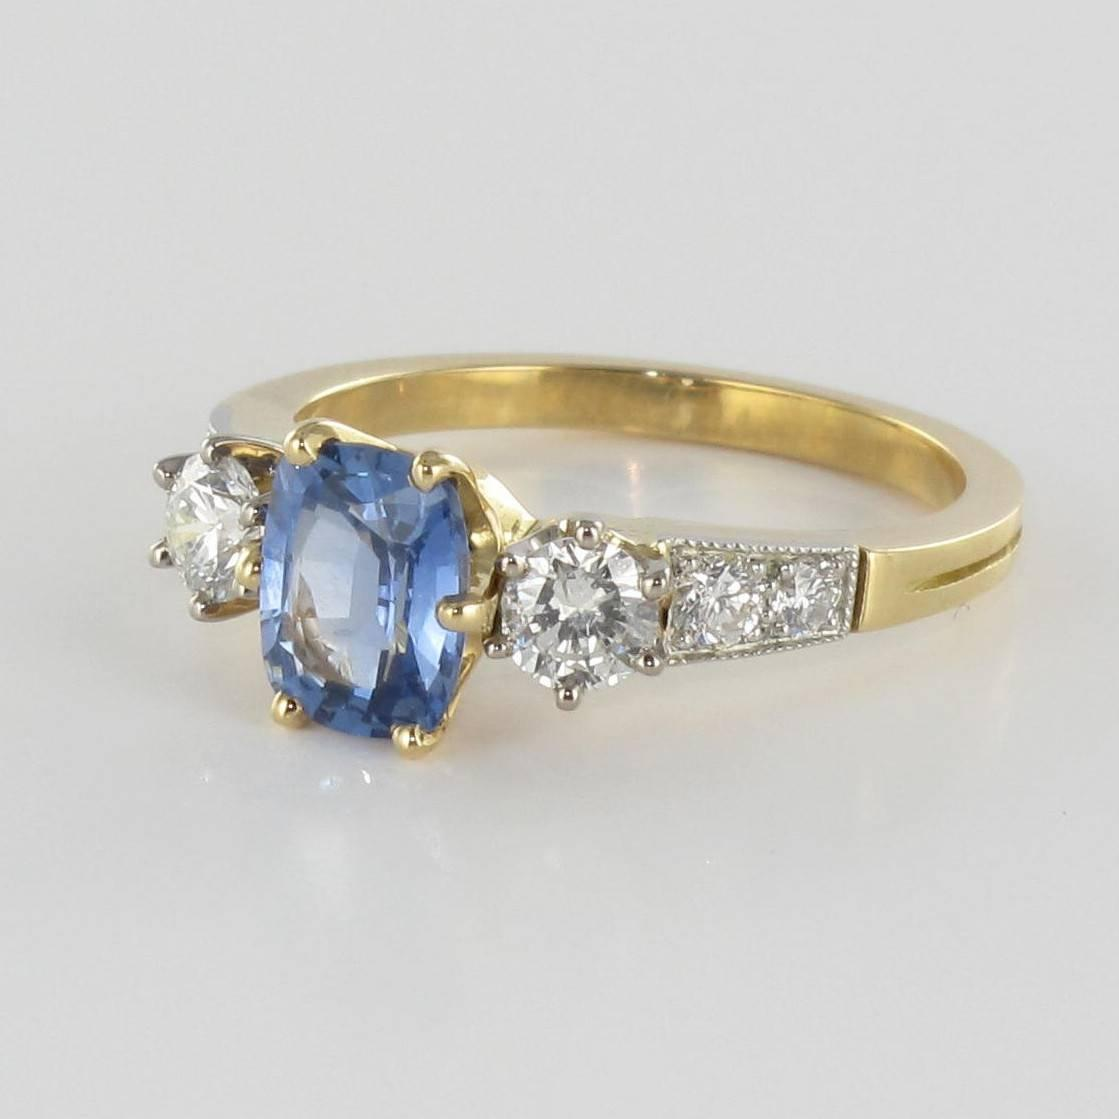 Diamond Rings For Sale Cheap: Blue Sapphire And Diamond Ring For Sale At 1stdibs